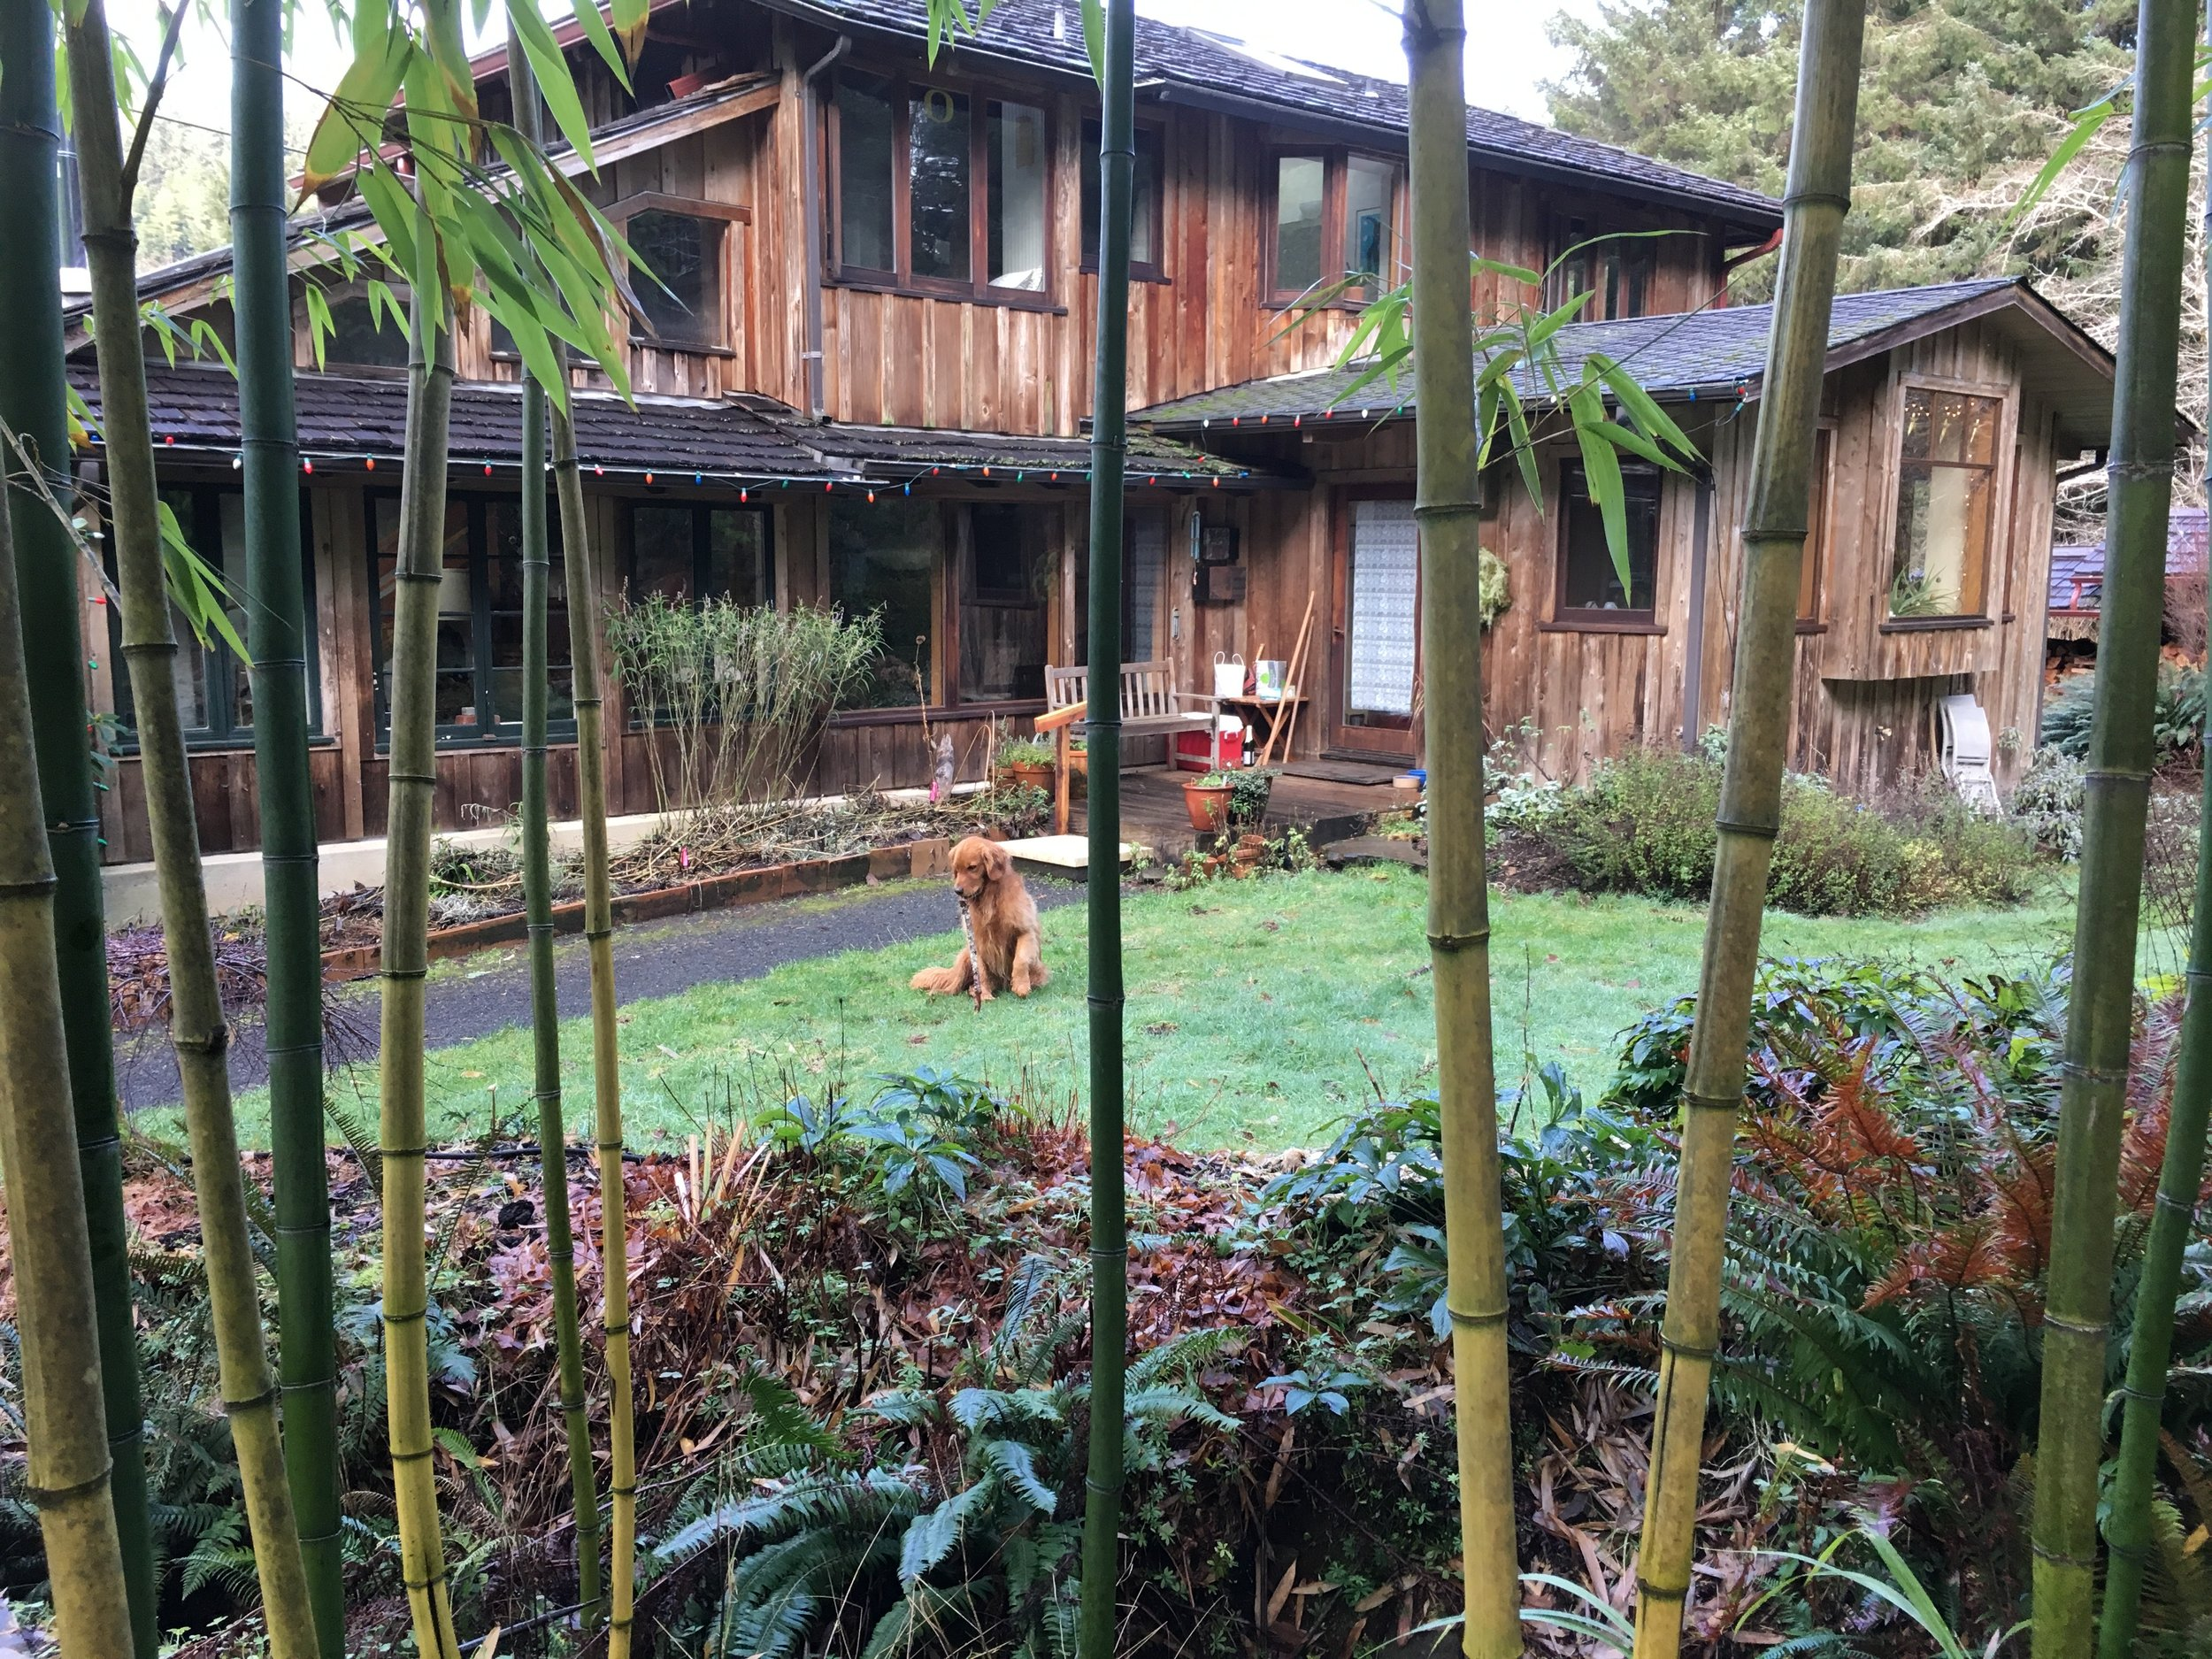 House Through the Bamboo